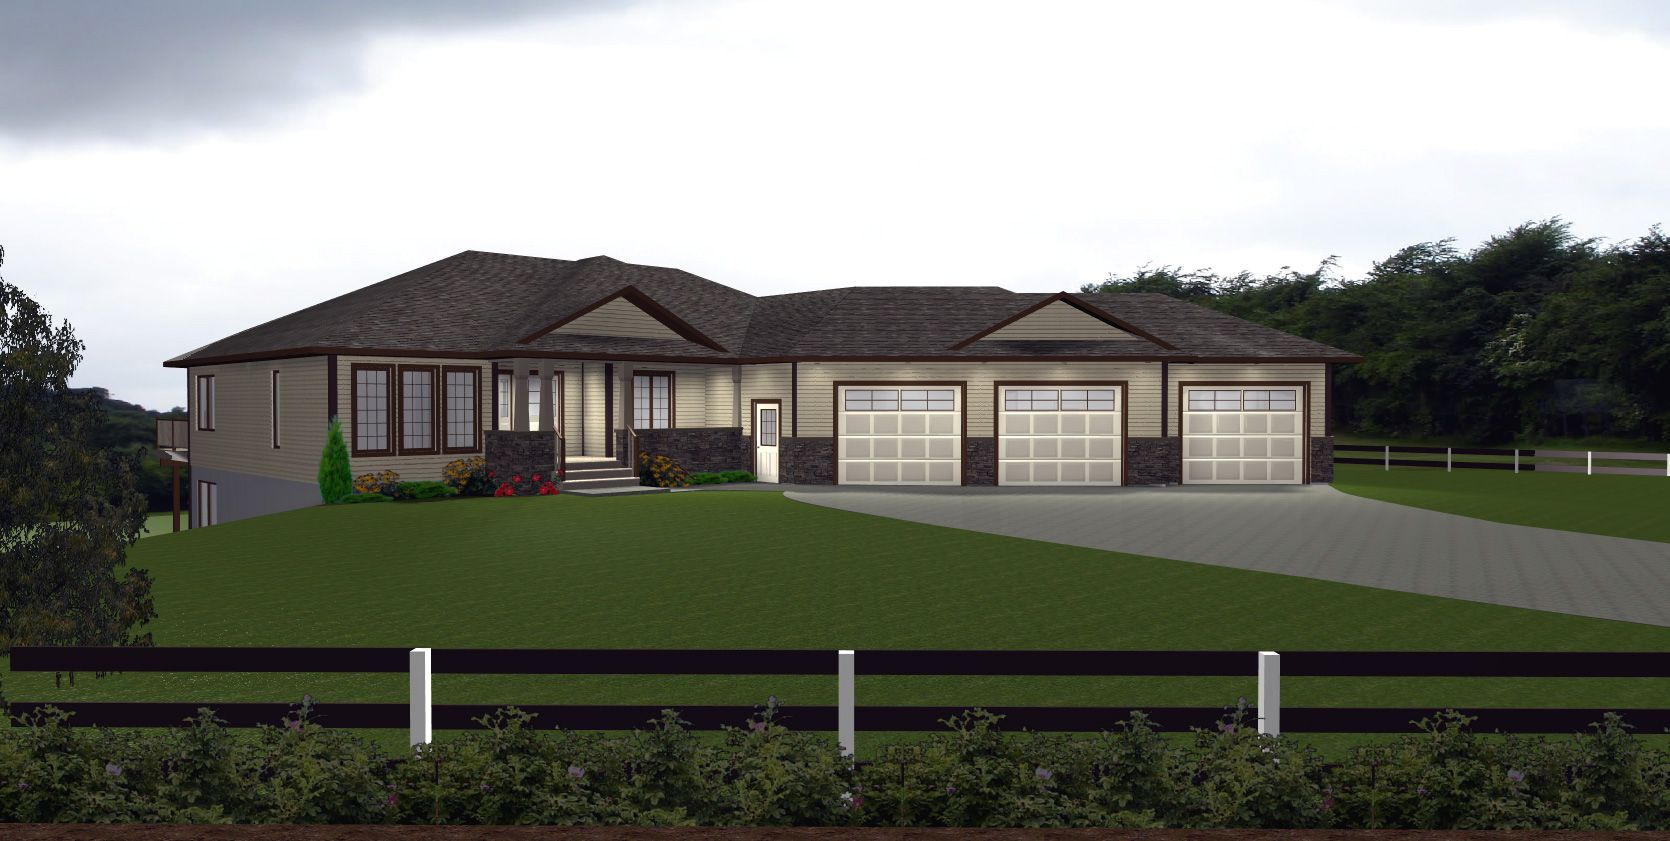 3 car garage 1900 sq ft house plans | Email: info ... House Plans Car Garage Attached on 1 car attached garage plans, 3 bay garage house plans, patio plans, attached carports, carport plans, rustic ranch house plans, 4 car attached garage plans, attached shed plans, fireplace plans, rv garage plans, attached house plans, laundry room plans, garage with workshop plans, attached 2 car garage door,